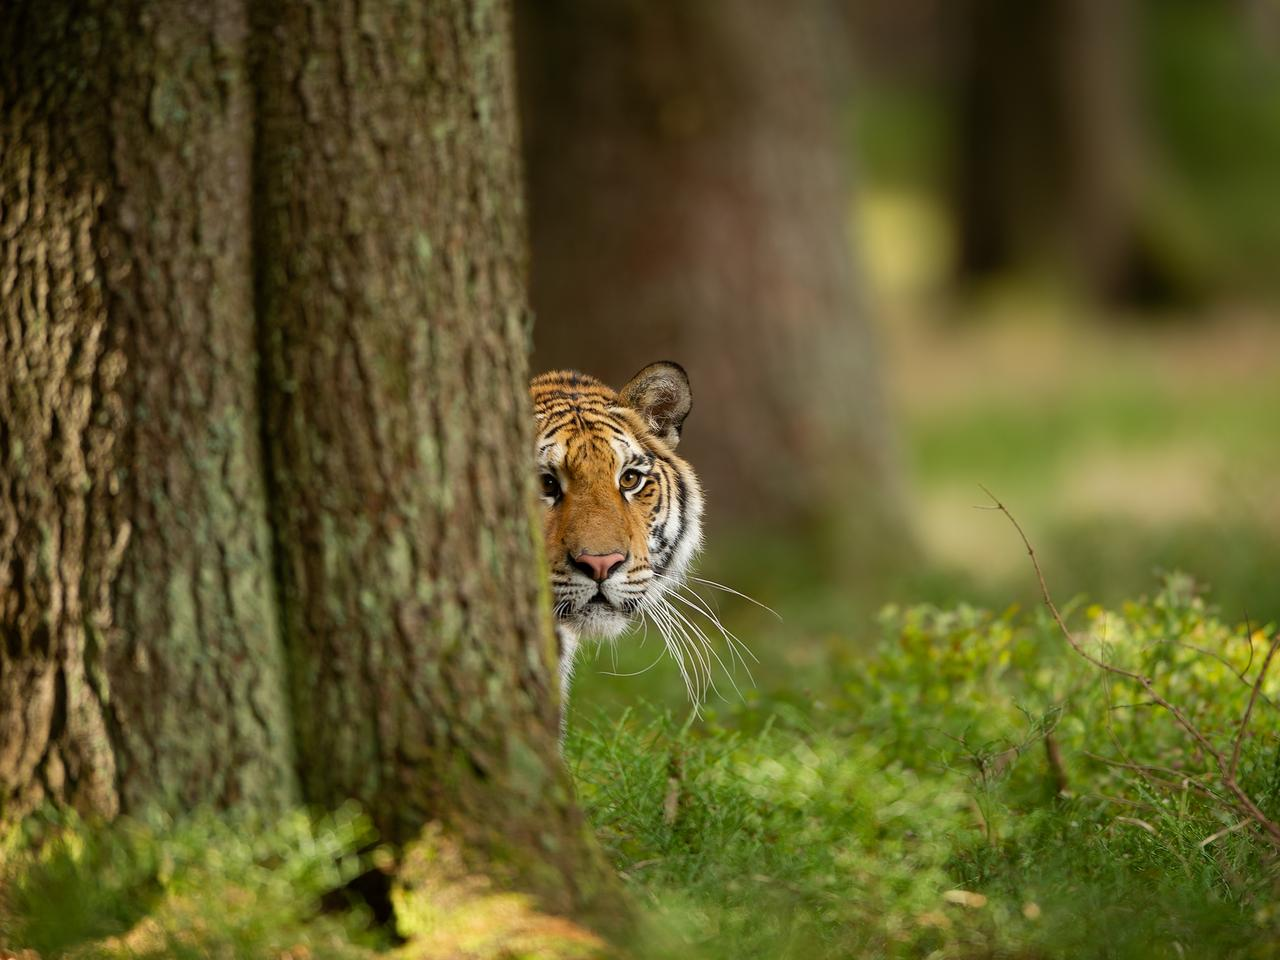 Tiger peeping from behind a tree. Dangerou animal in the forest. Siberian tiger, Panthera tigris altaica